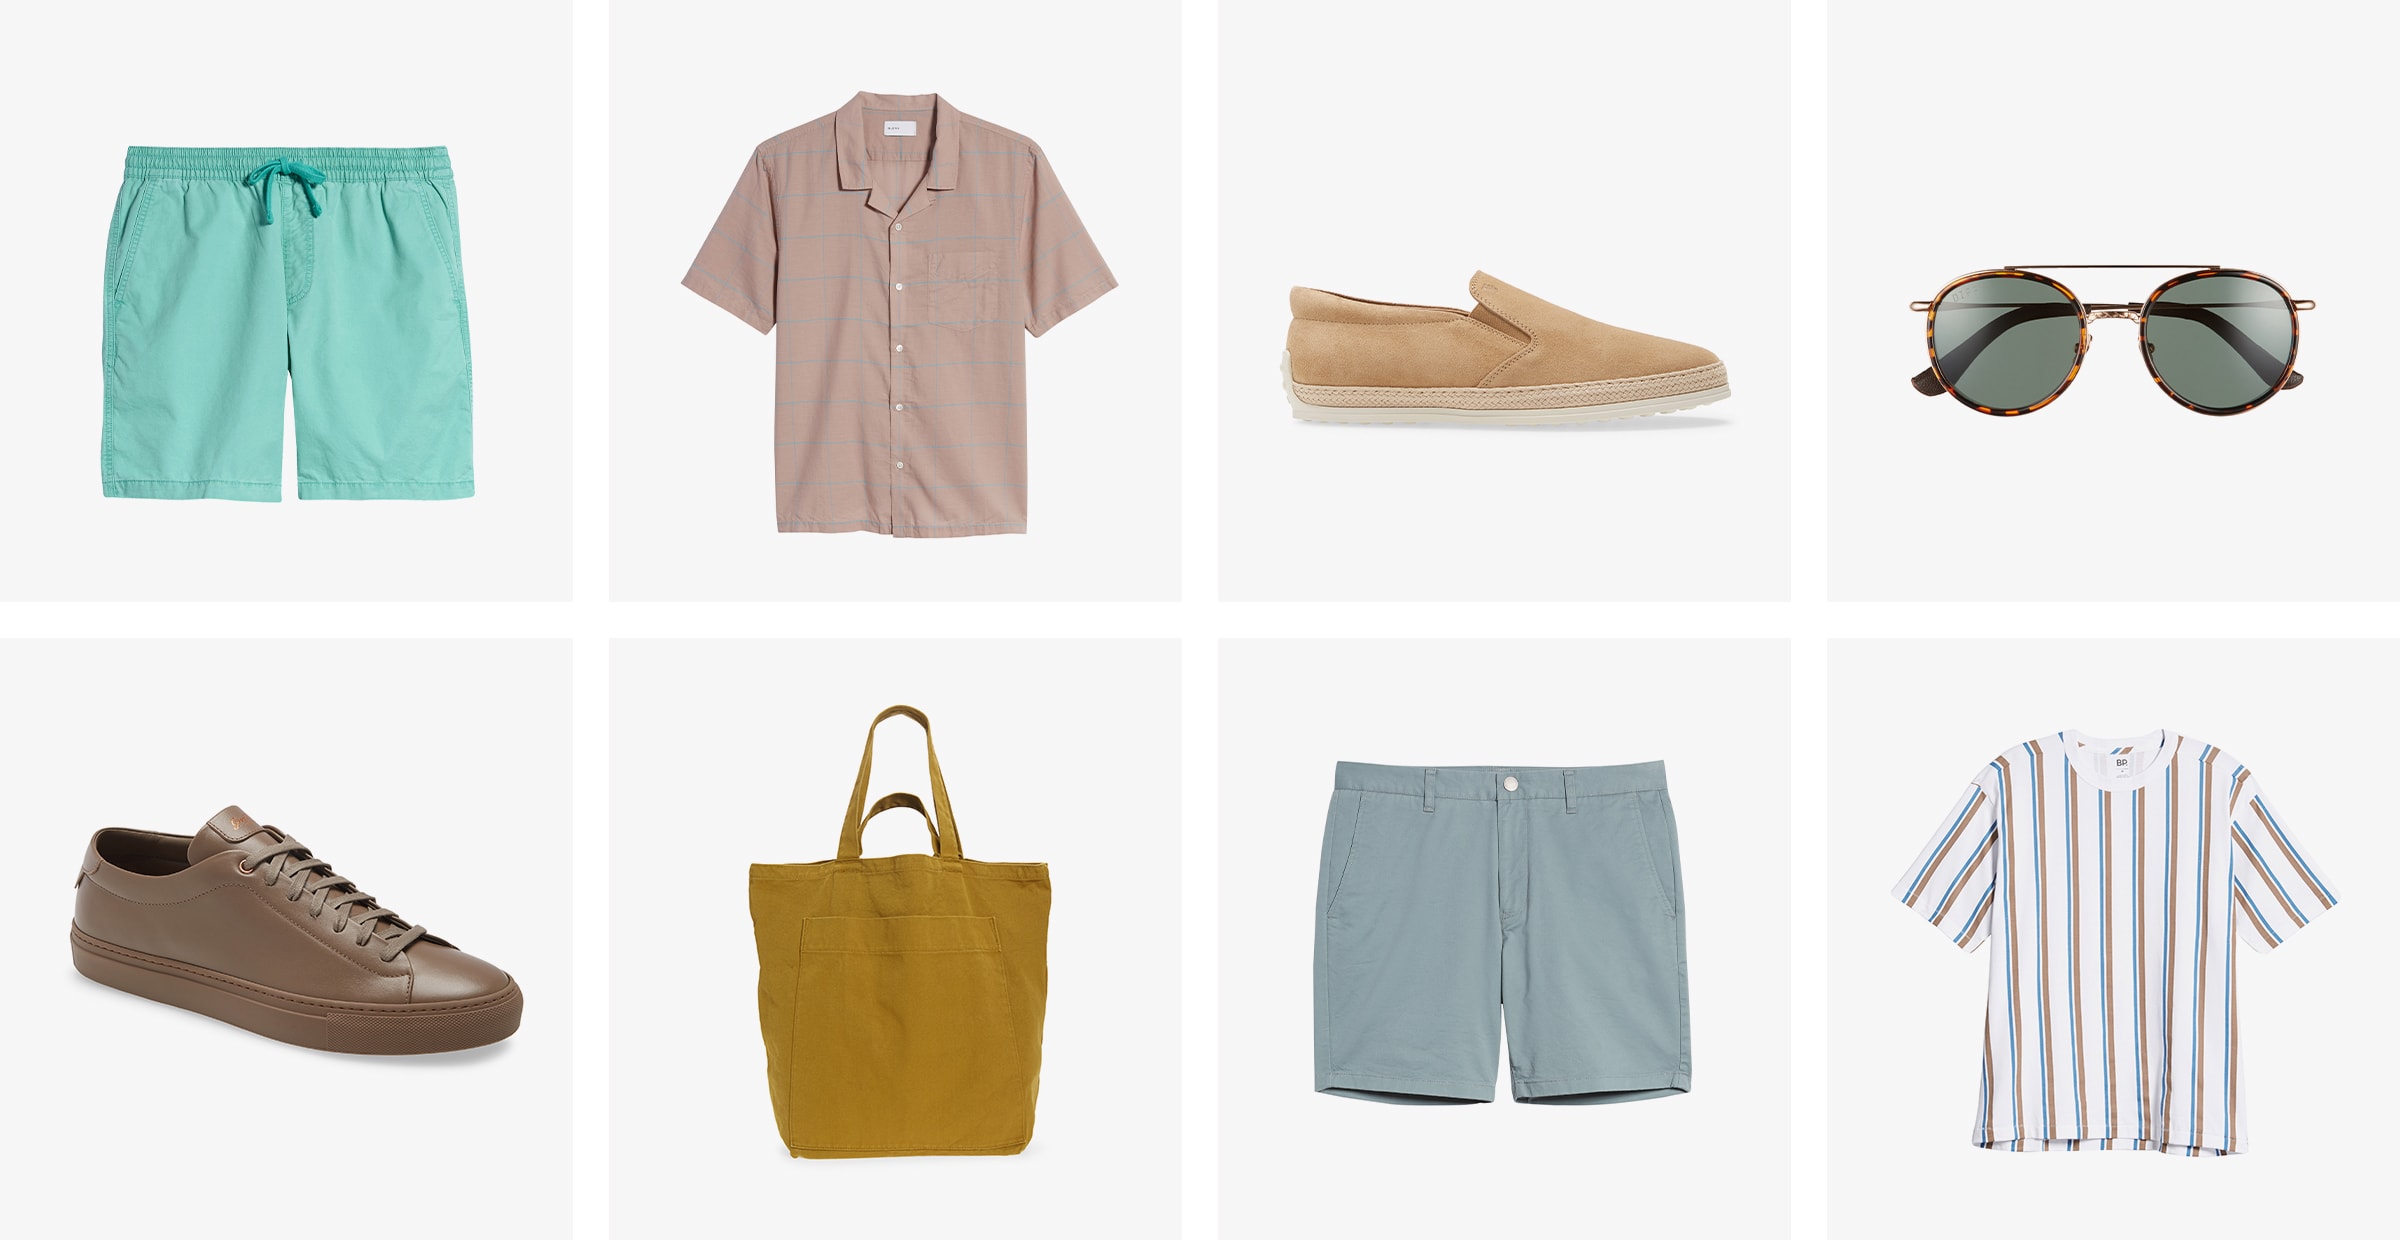 Men's mint shorts, a button-up shirt, slip-on shoes, sunglasses, sneakers, tote, blue shorts and striped T-shirt.